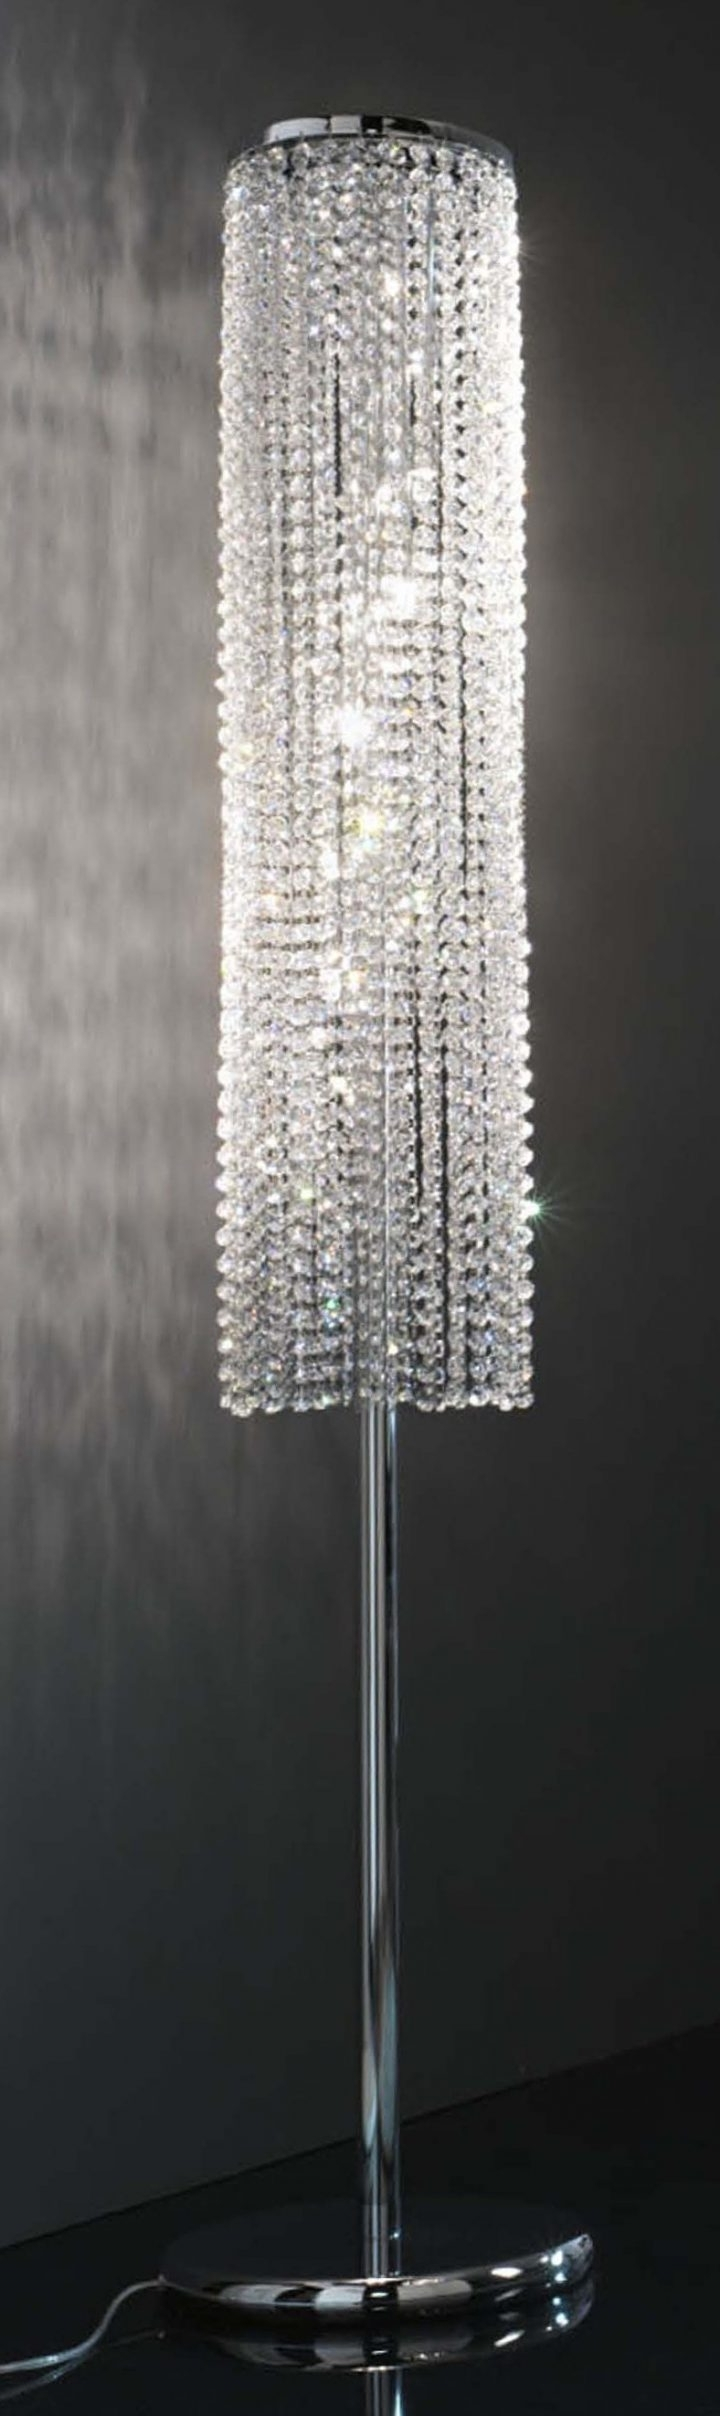 Crystal Chandelier Standing Lamps Intended For Latest Chandeliers Design : Magnificent Floor Lamp Crystal Chandelier Turn (View 7 of 20)